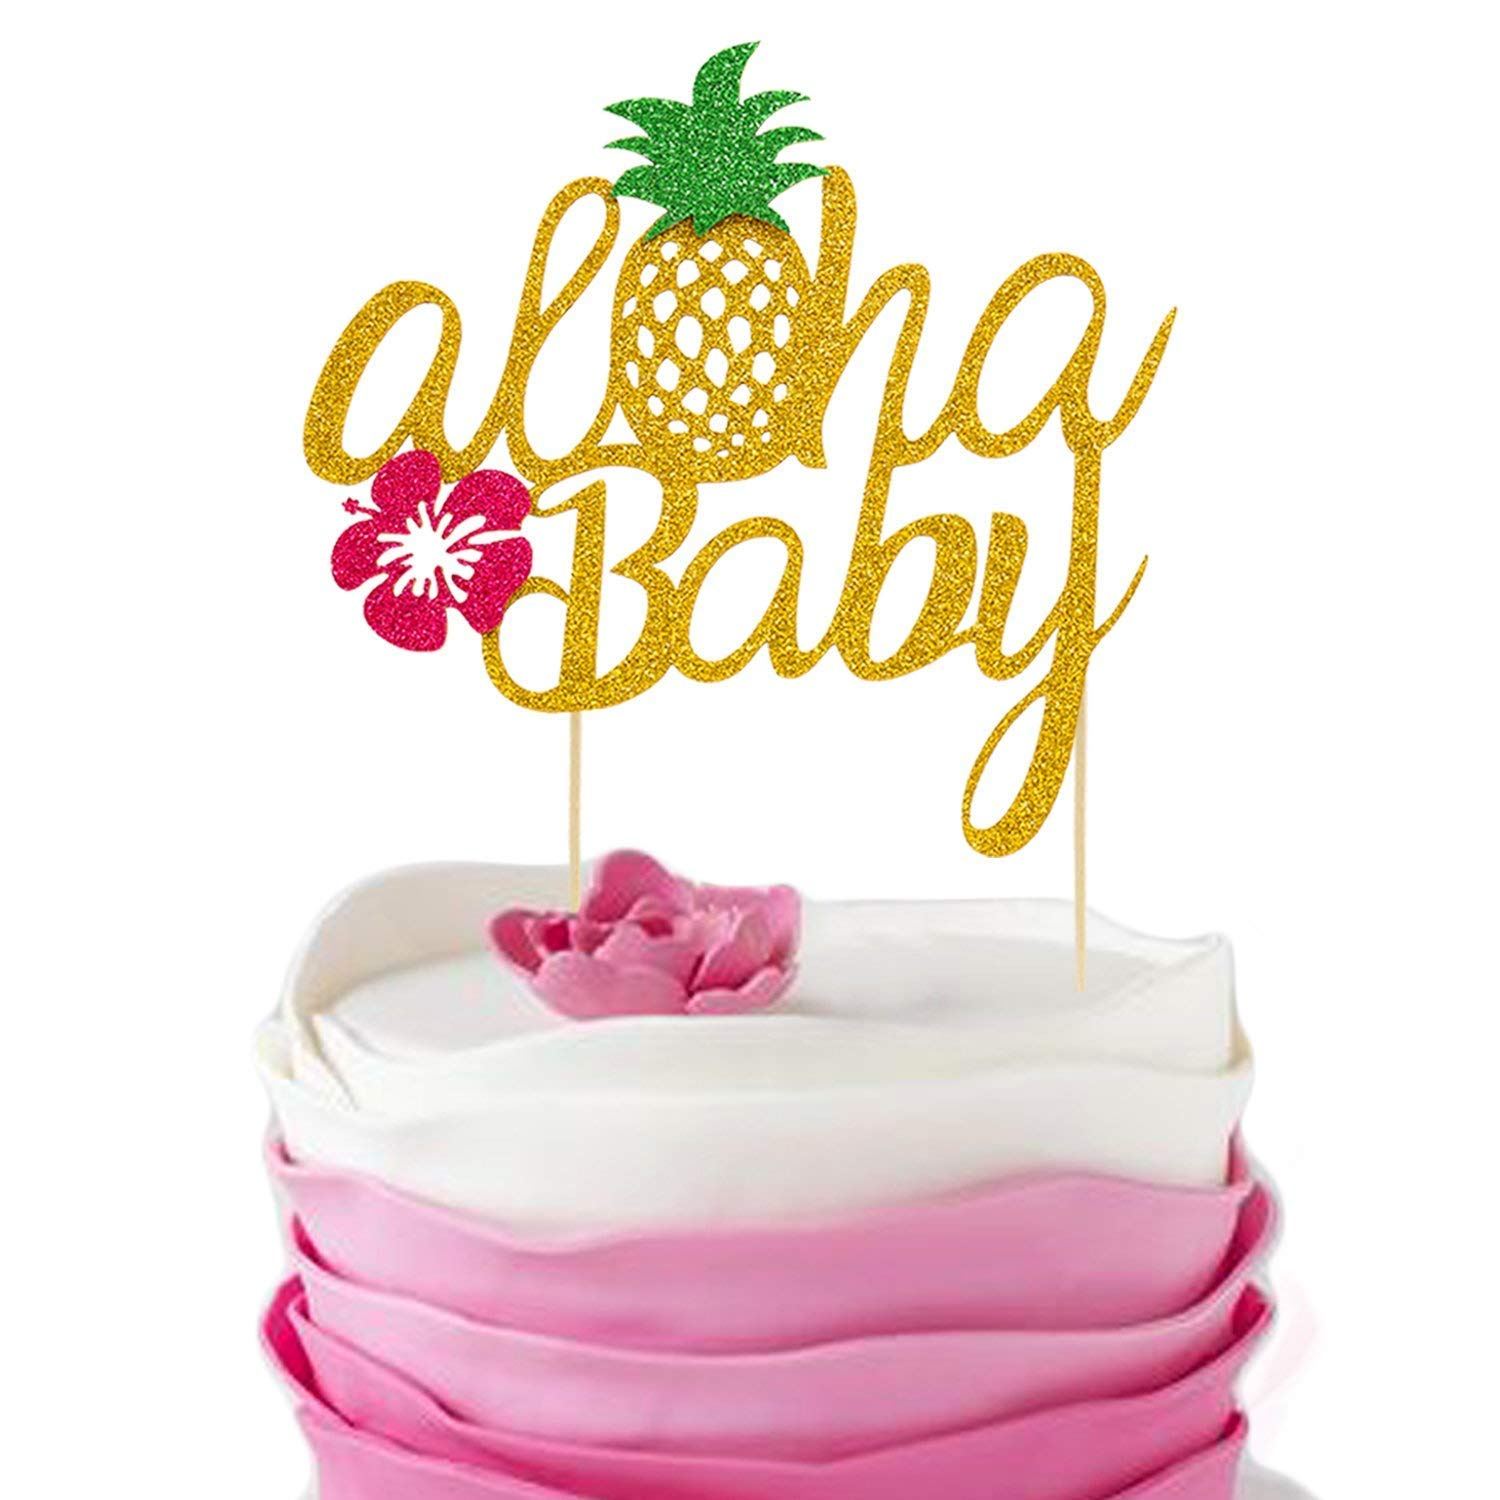 8a9d869319913 Amazon.com: Pineapple Cake Toppers Aloha Baby Shower Birthday Glitter  Decorations Hawaiian Tropical Beach Pool Laua Party Favor Supplies: Kitchen  & Dining